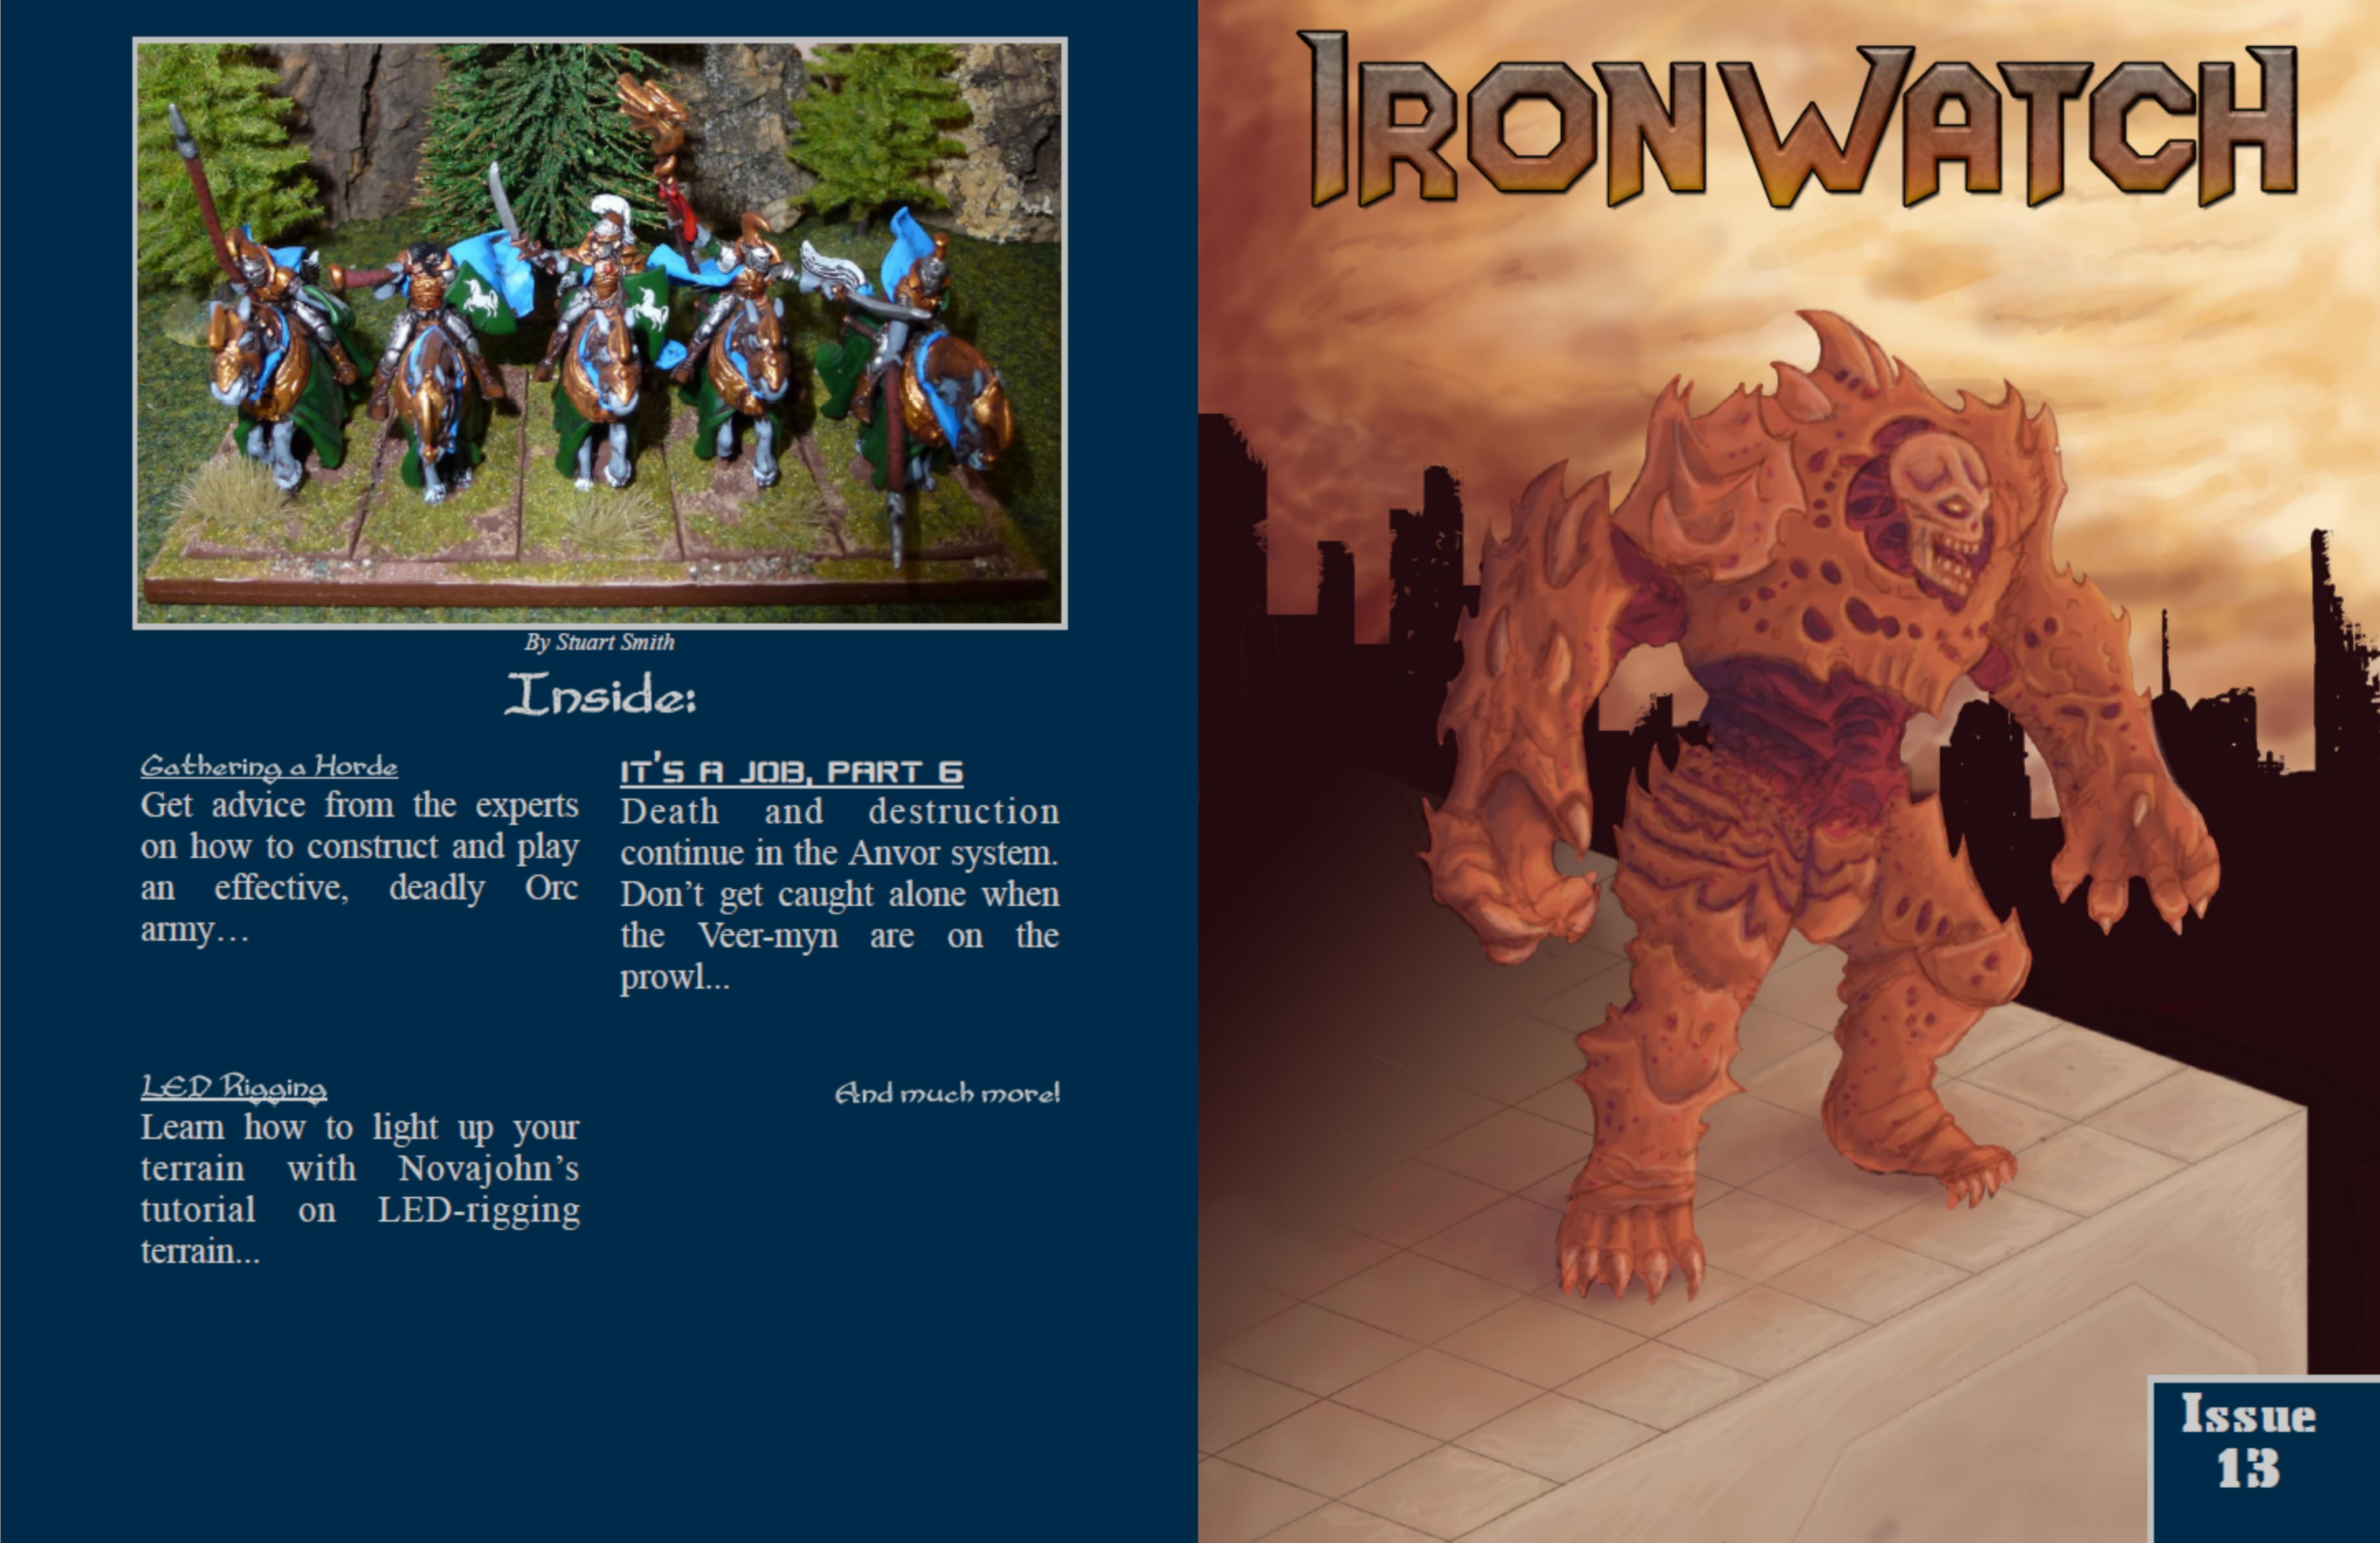 Ironwatch Issue 13 cover image